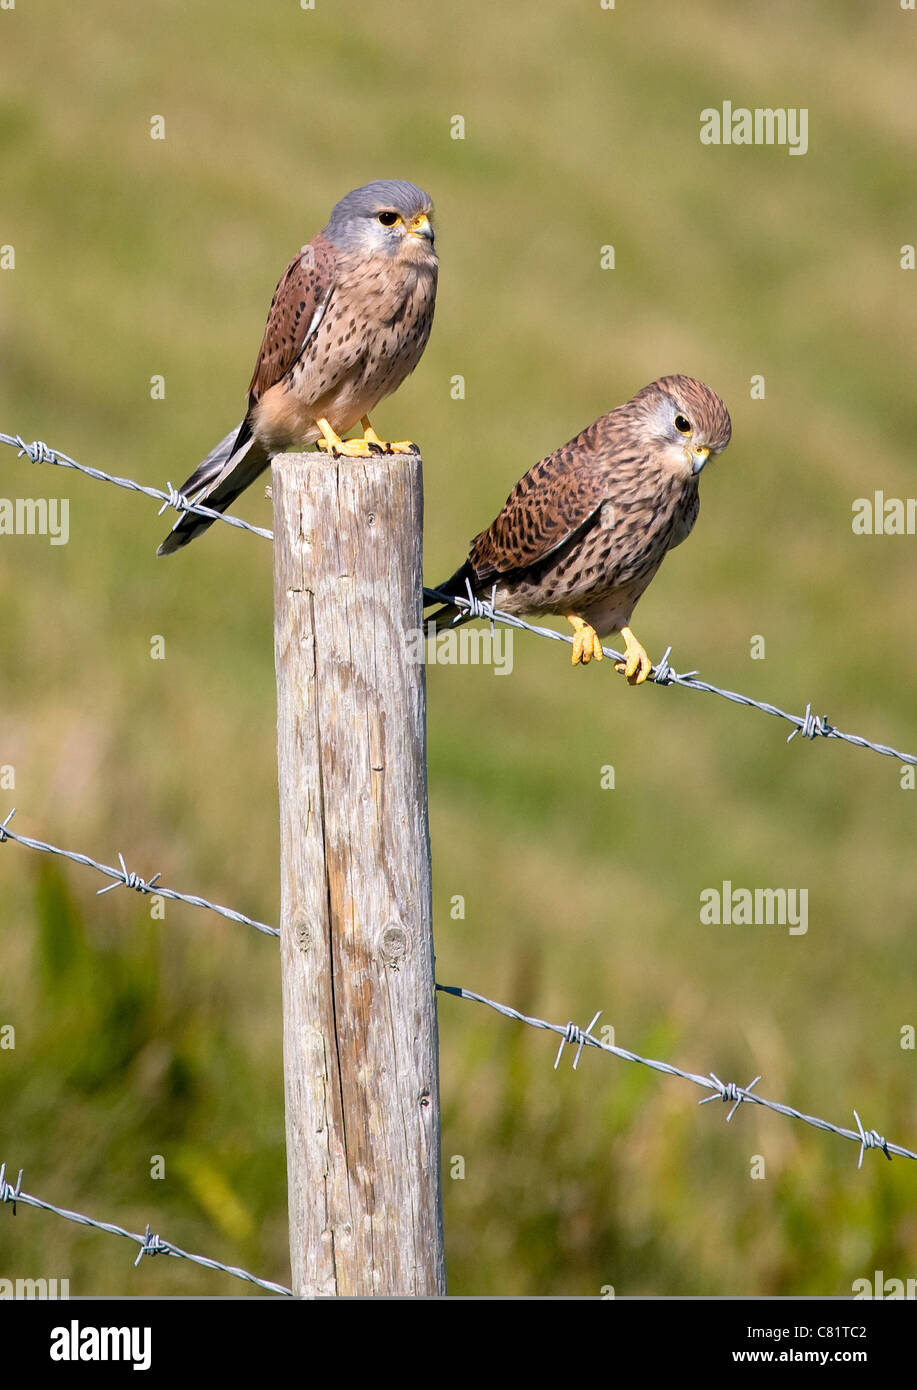 Pair of wild Common Kestrels posing on a barbed wire fence on the Dorset coast - Stock Image